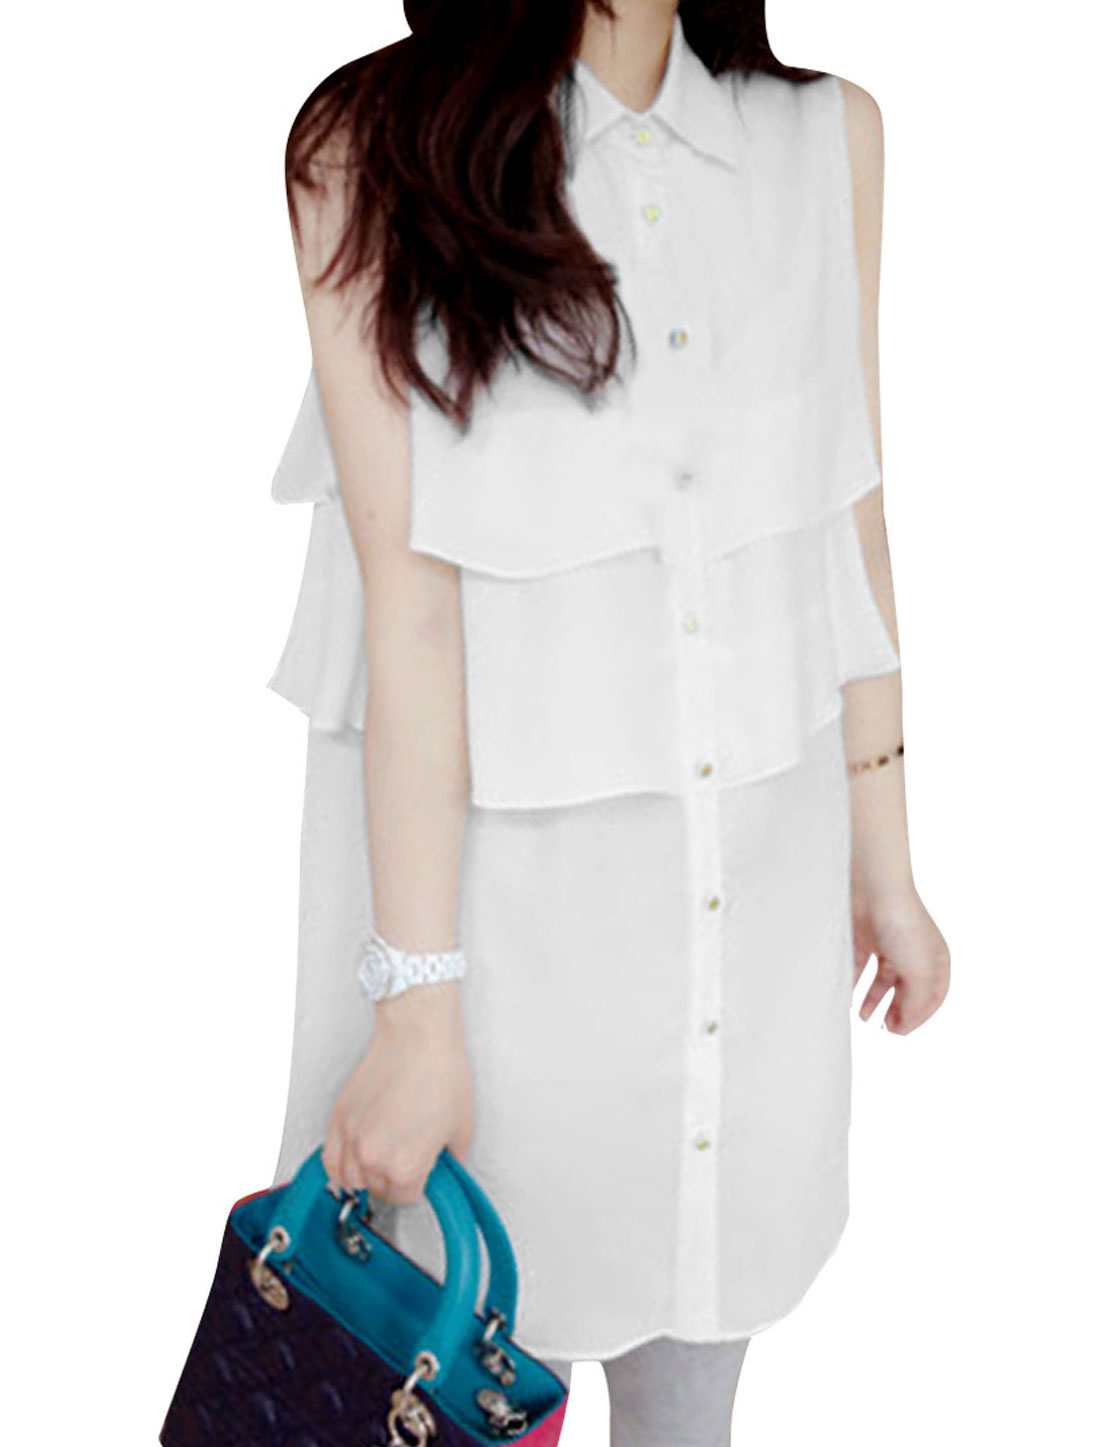 Ladies Point Collar Sleeveless Tiered Casual Shirt White S